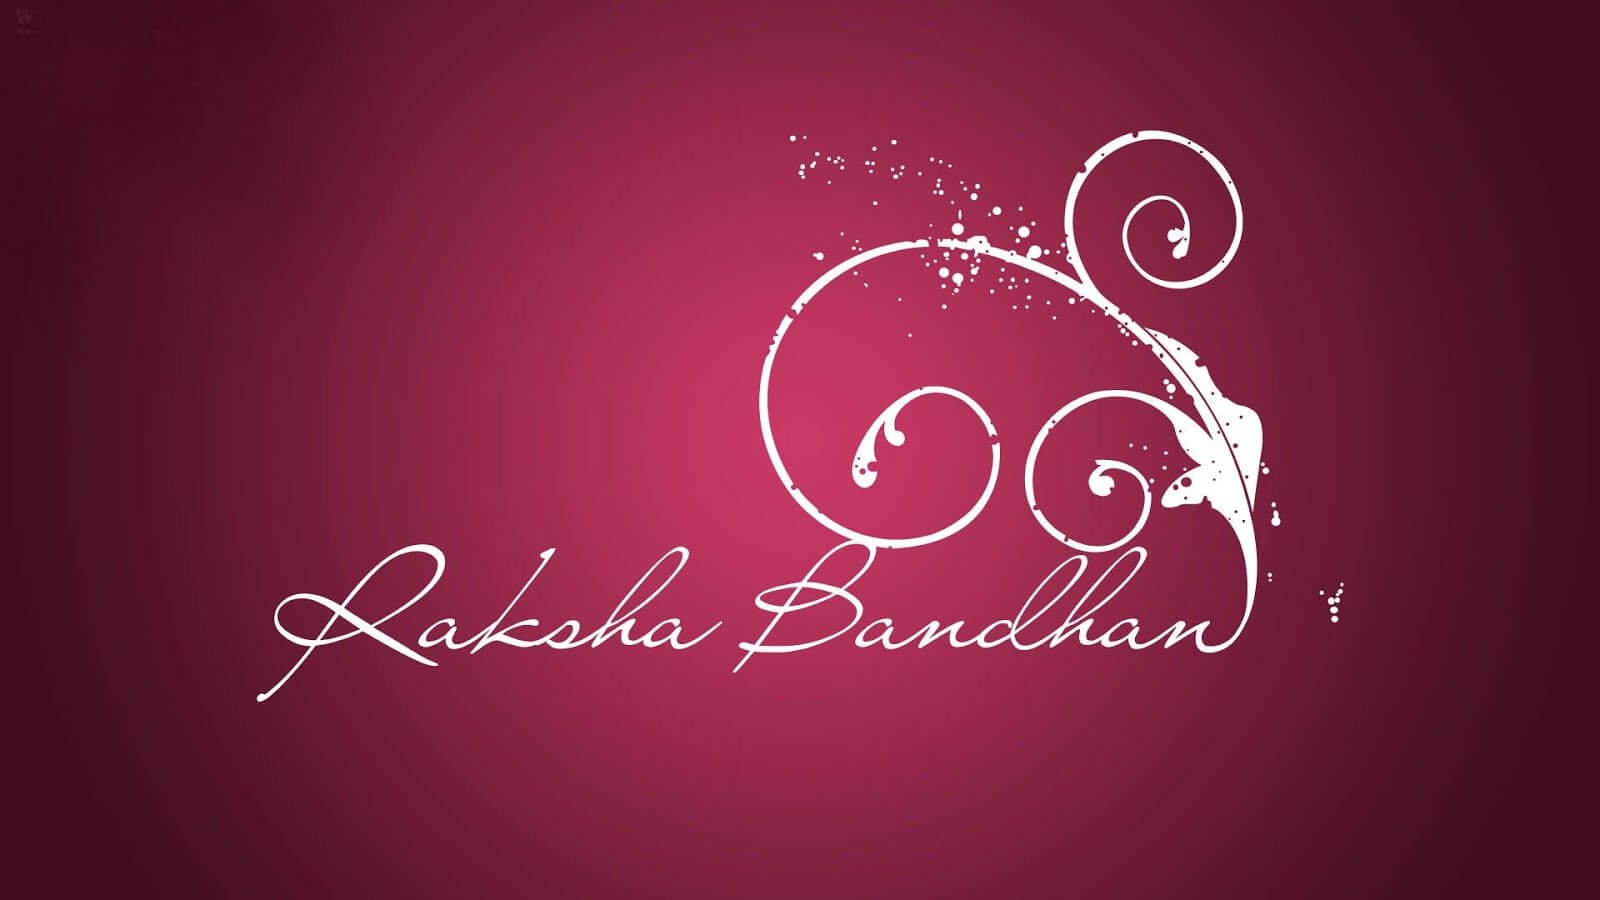 happy Raksha Bandhan images wallpapers greeting cards